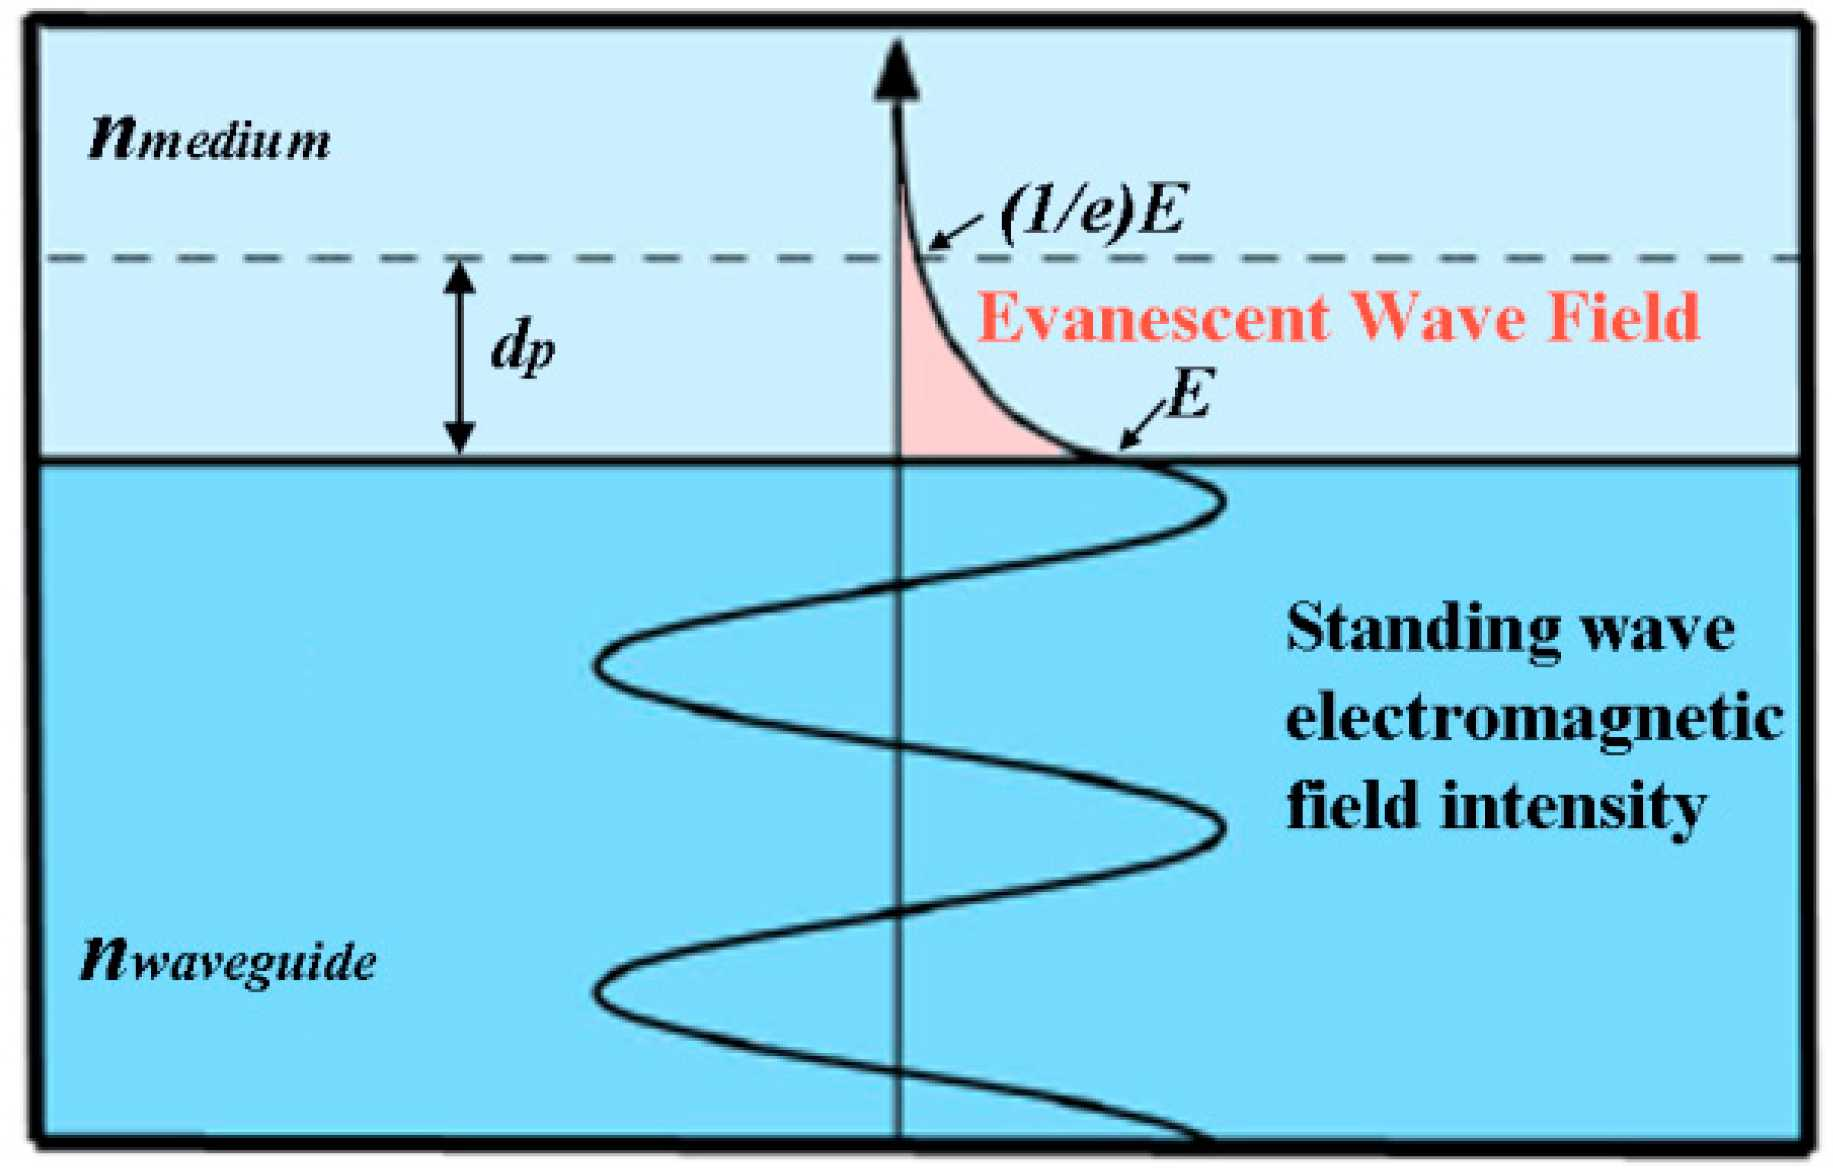 Wave Review Worksheet Answers Along with Sensors Free Full Text